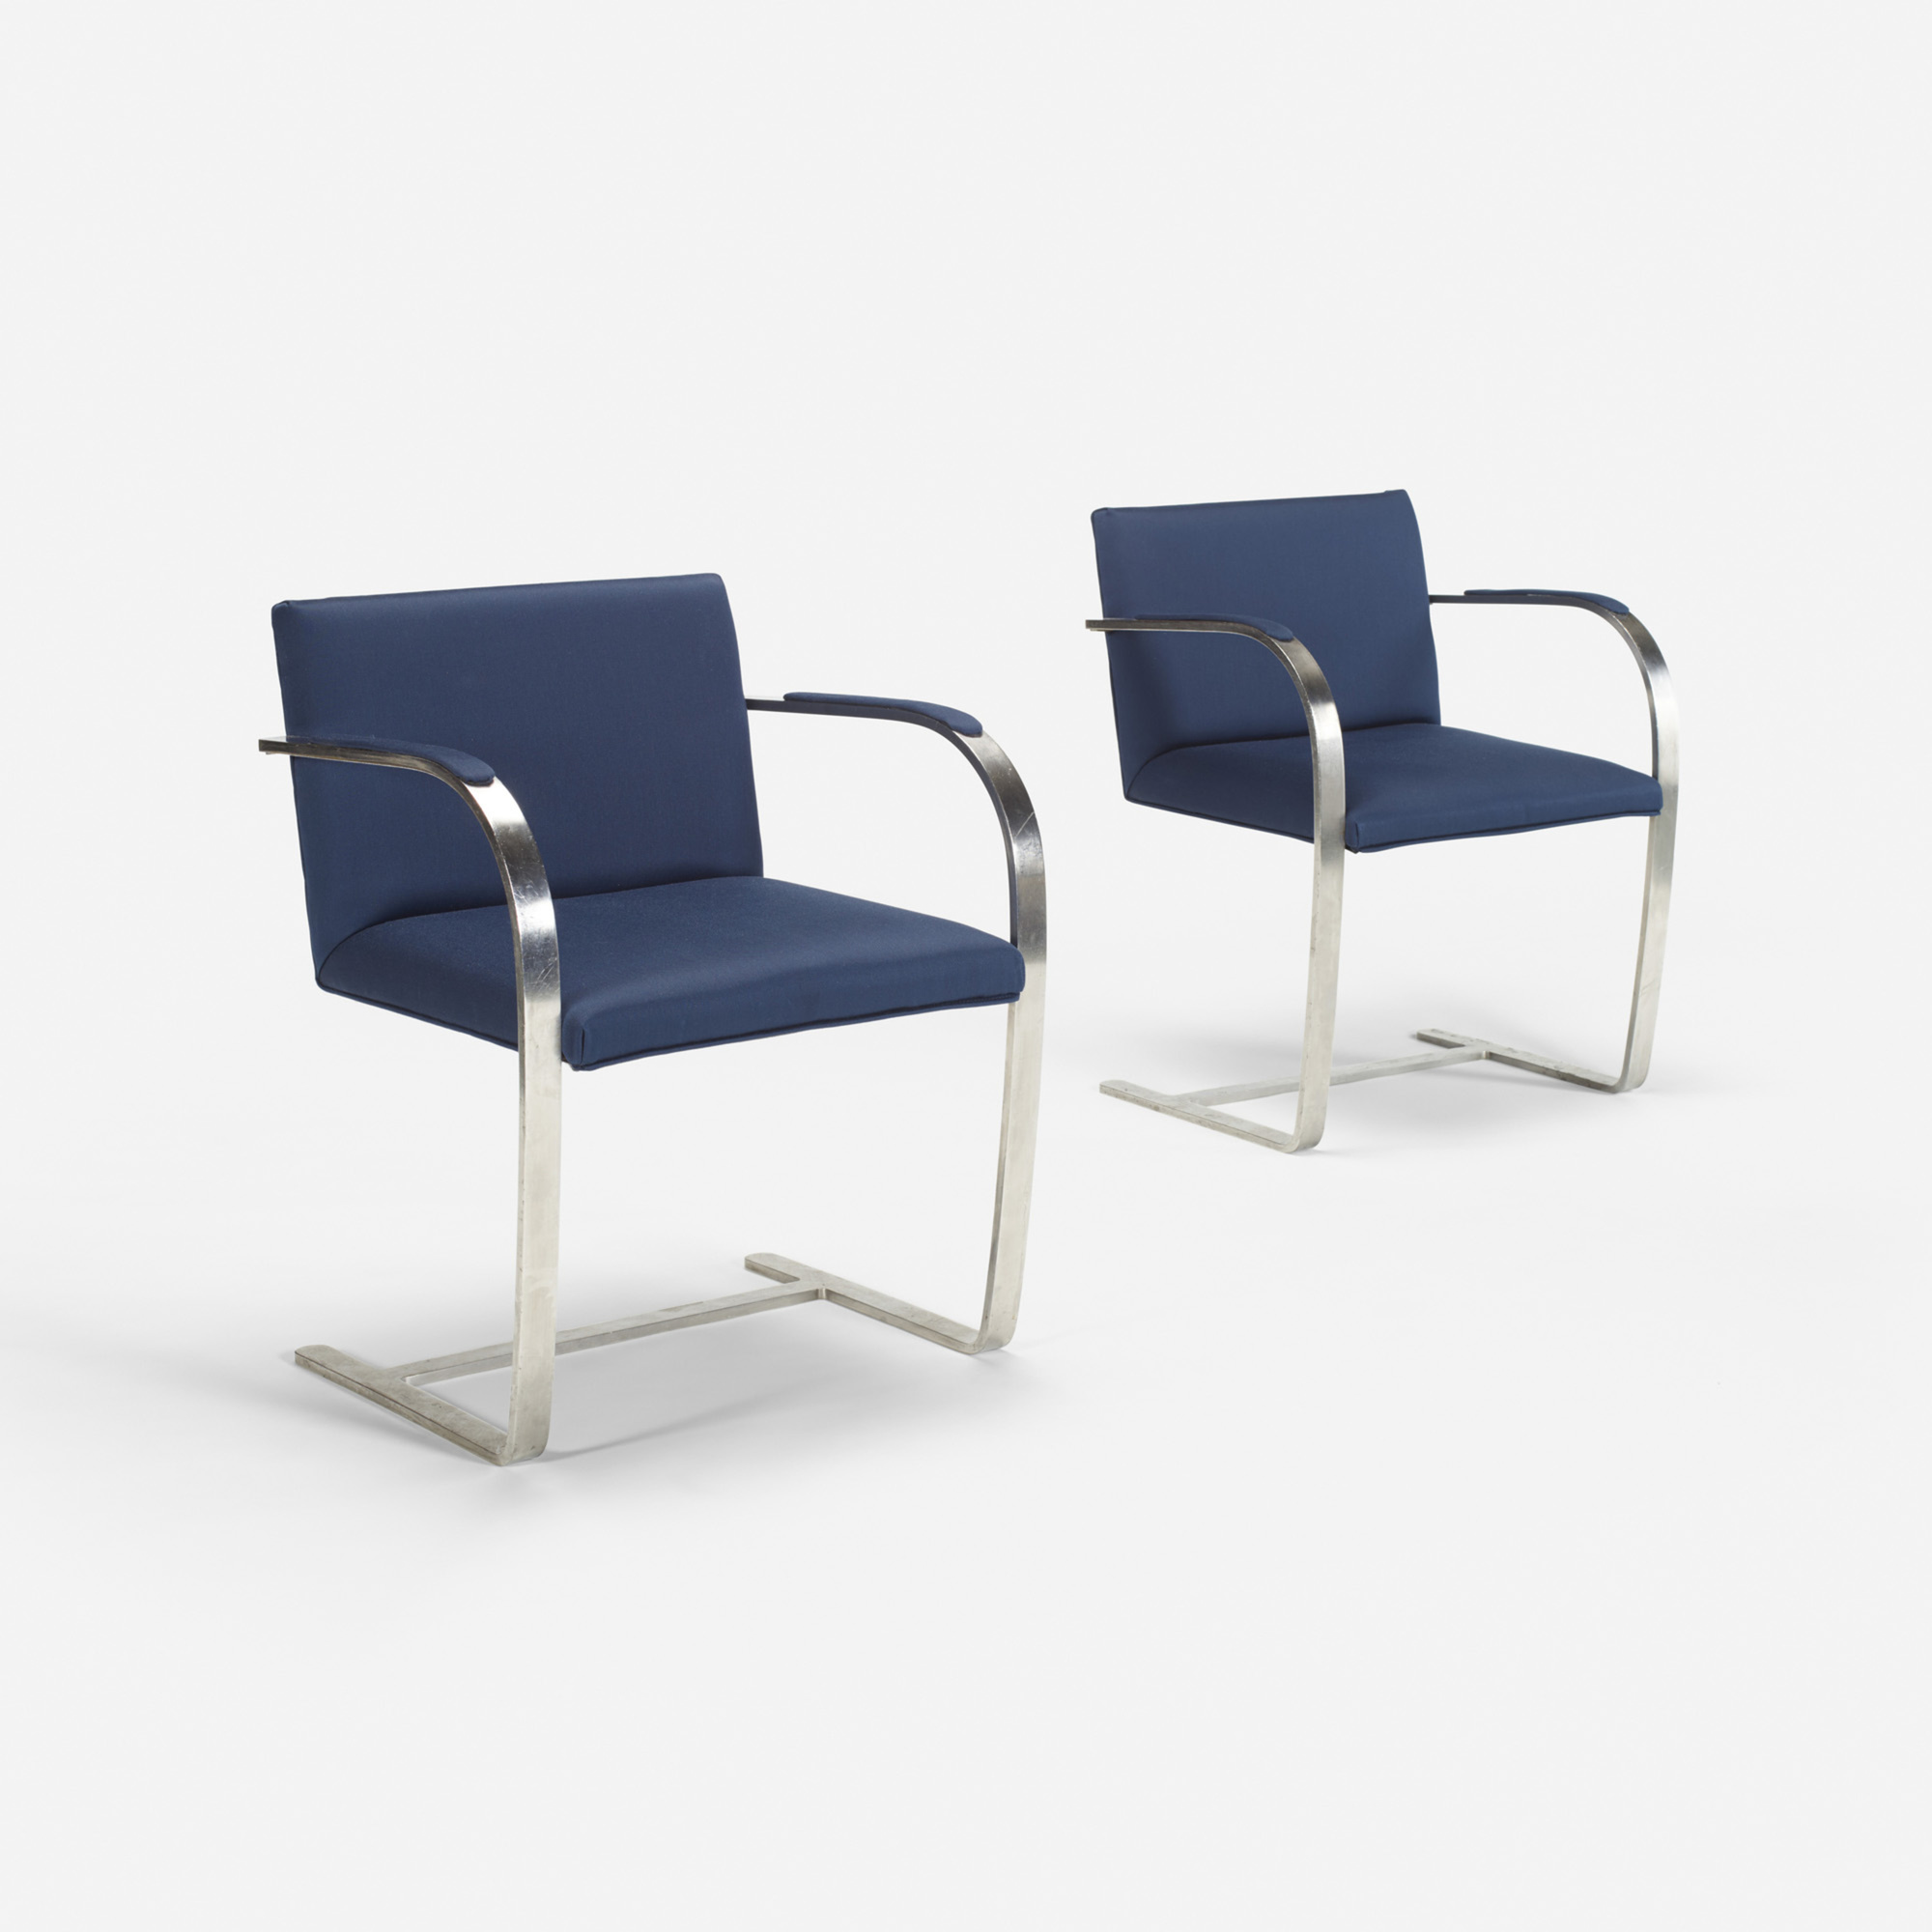 509: Ludwig Mies van der Rohe / Brno chairs from The Four Seasons, pair (1 of 1)